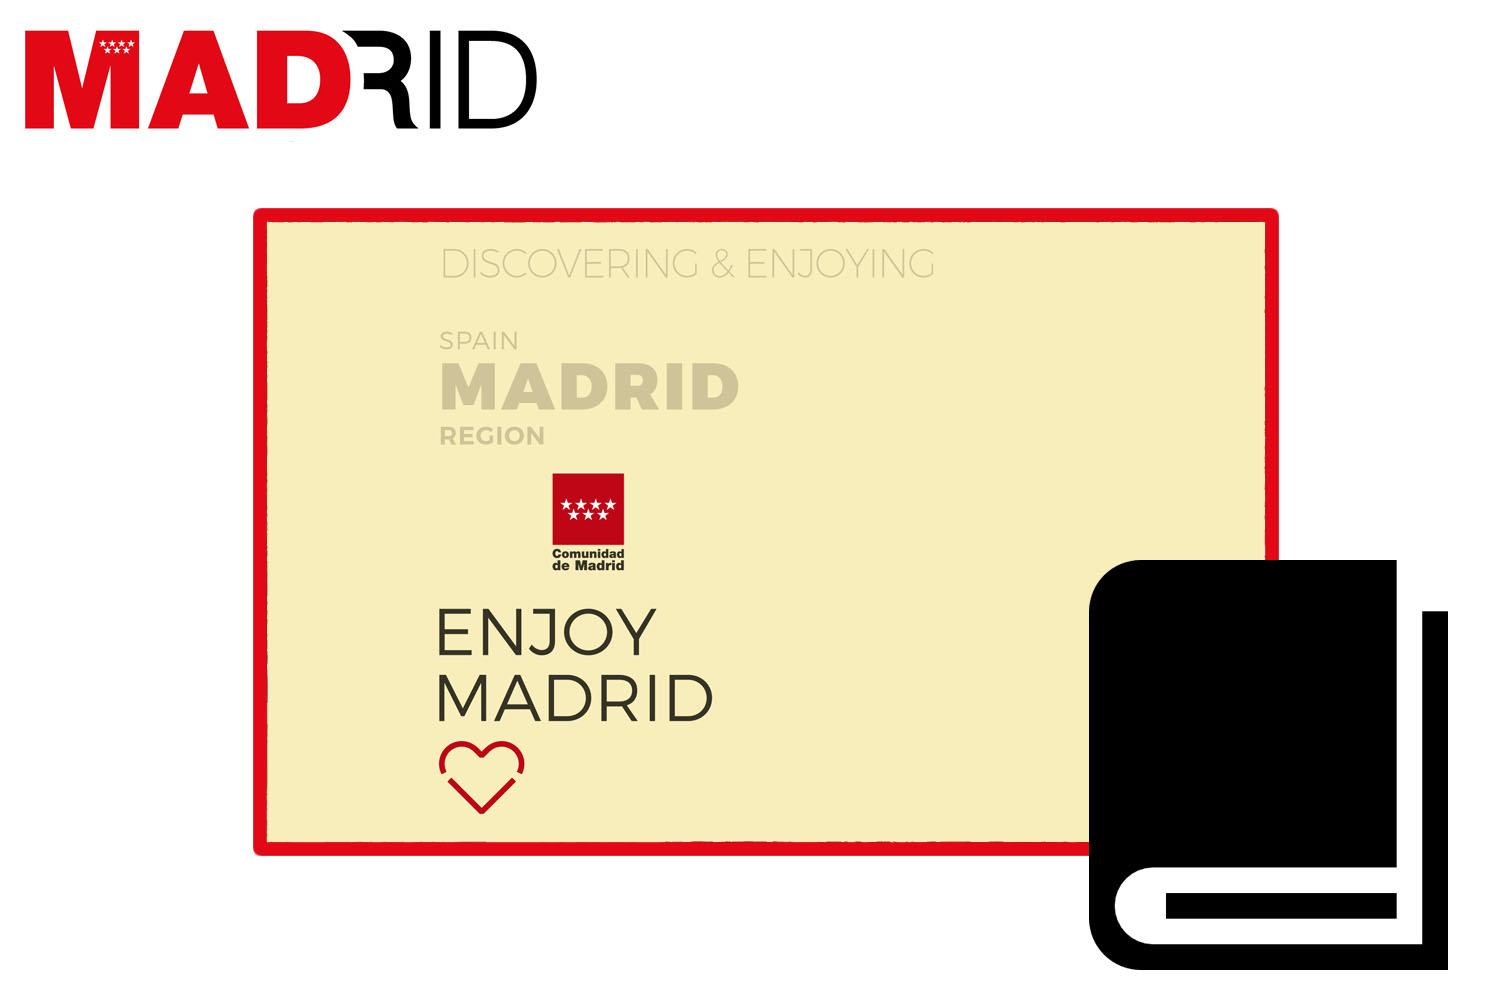 Region of Madrid. Enjoy Madrid